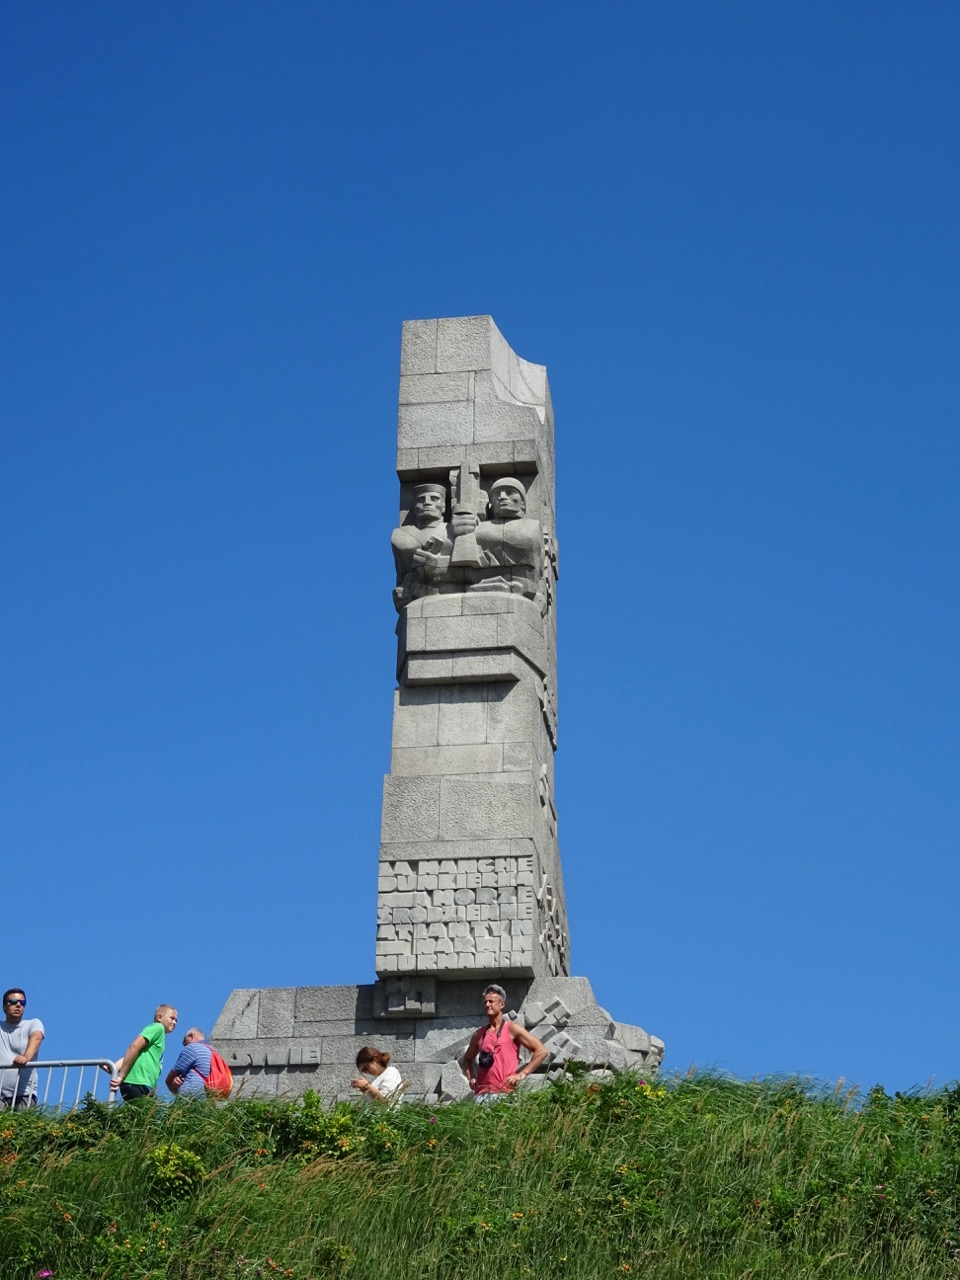 The memorial at Westerplatte, just outside of Gdansk